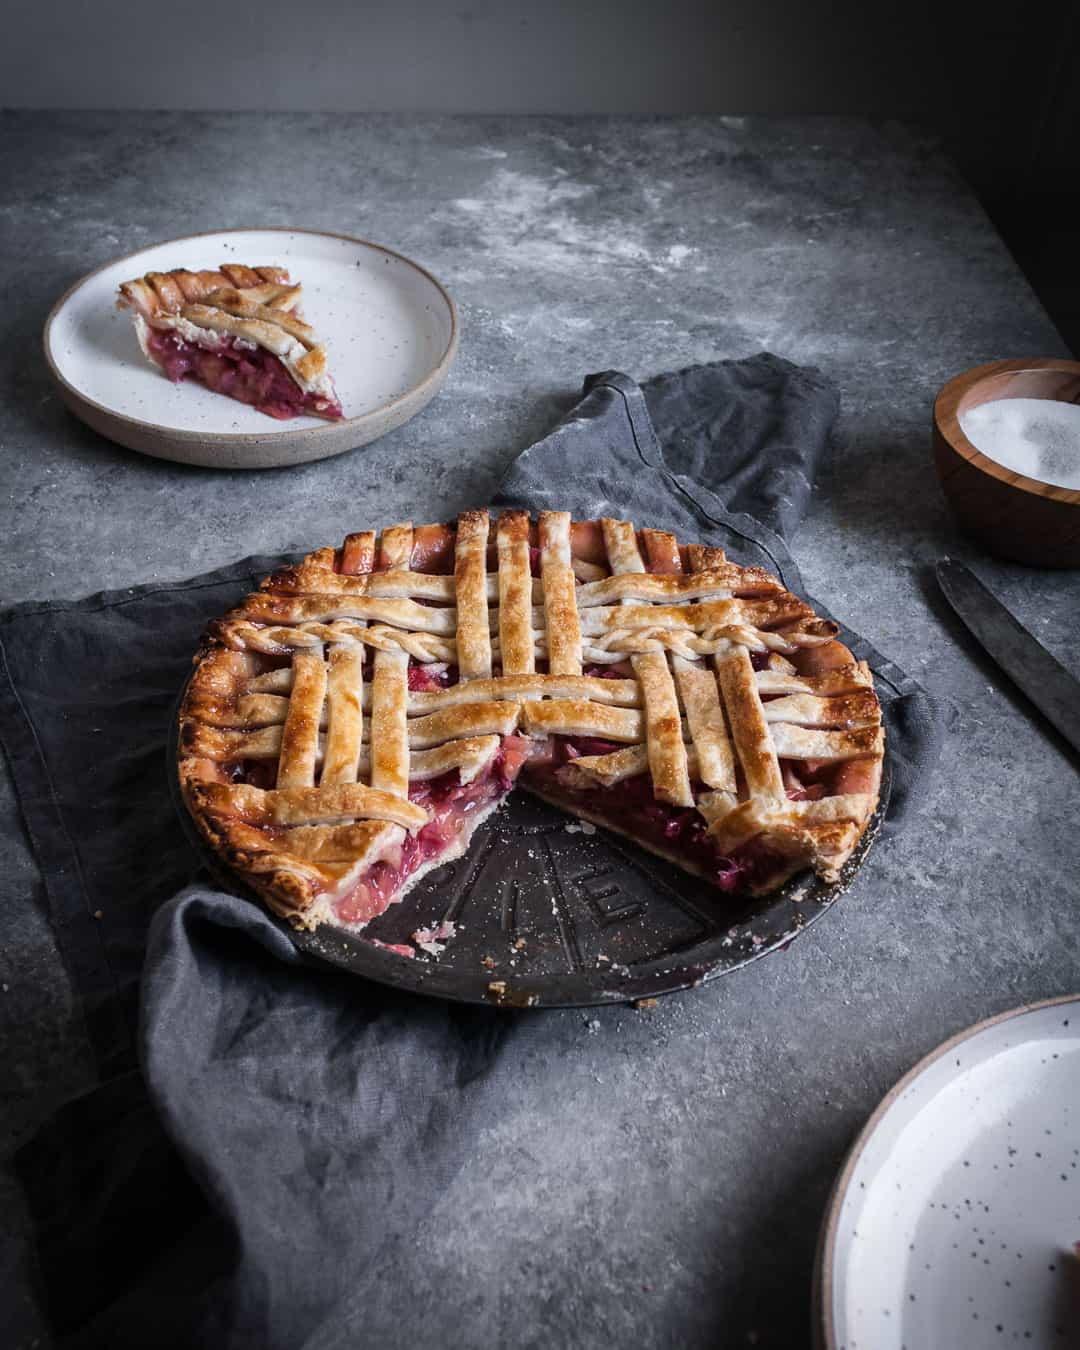 angled shot of rhubarb apple pie with ginger and lemongrass on a grey surface with a piece cut out on a plate and a grey linen towel underneath the pie tin